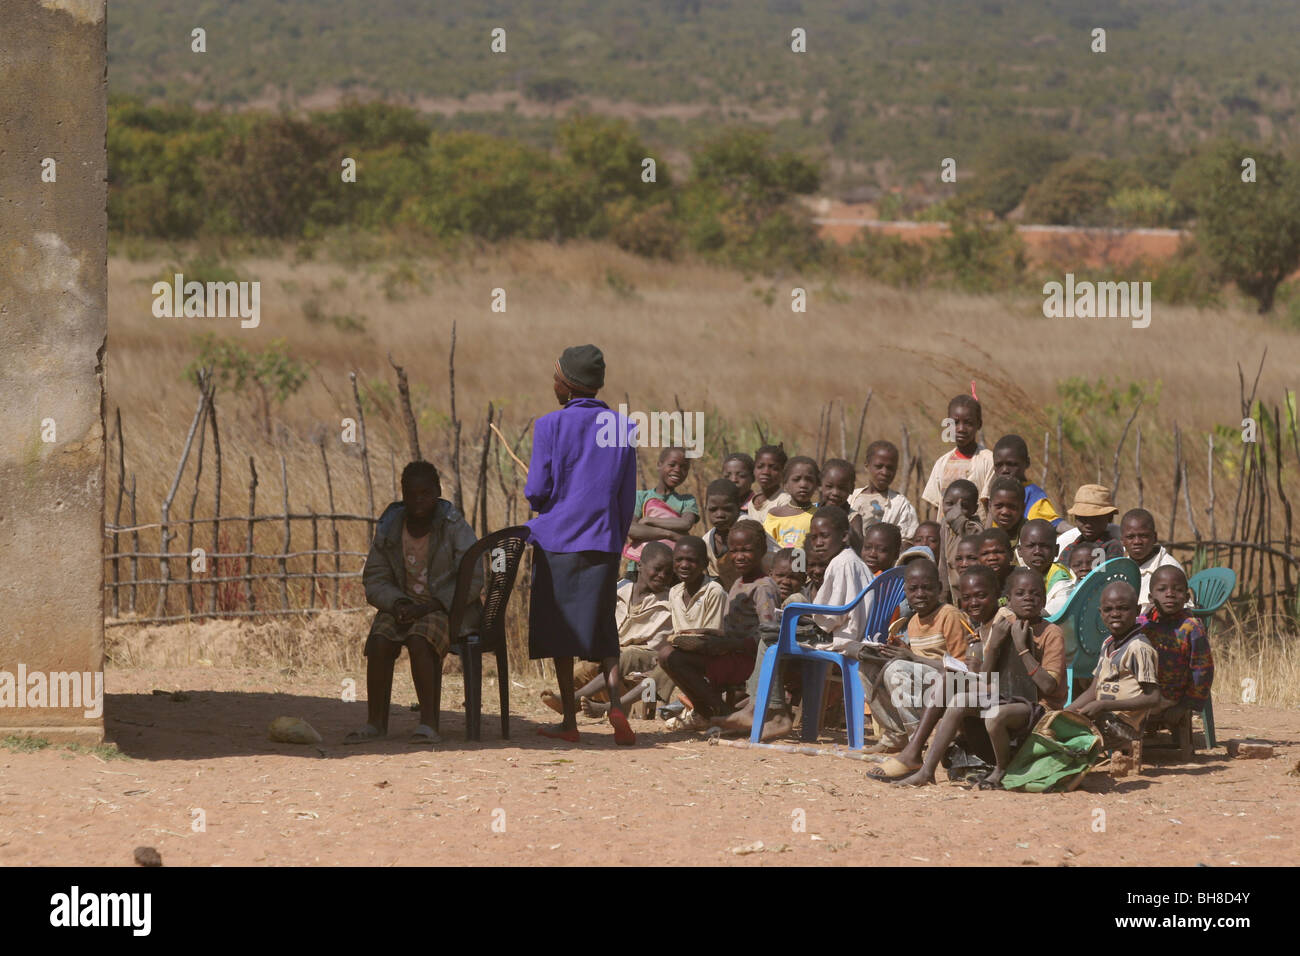 Children at school between Kuvango and Cutatoi, Southern Angola, Africa. The class room is outside. - Stock Image